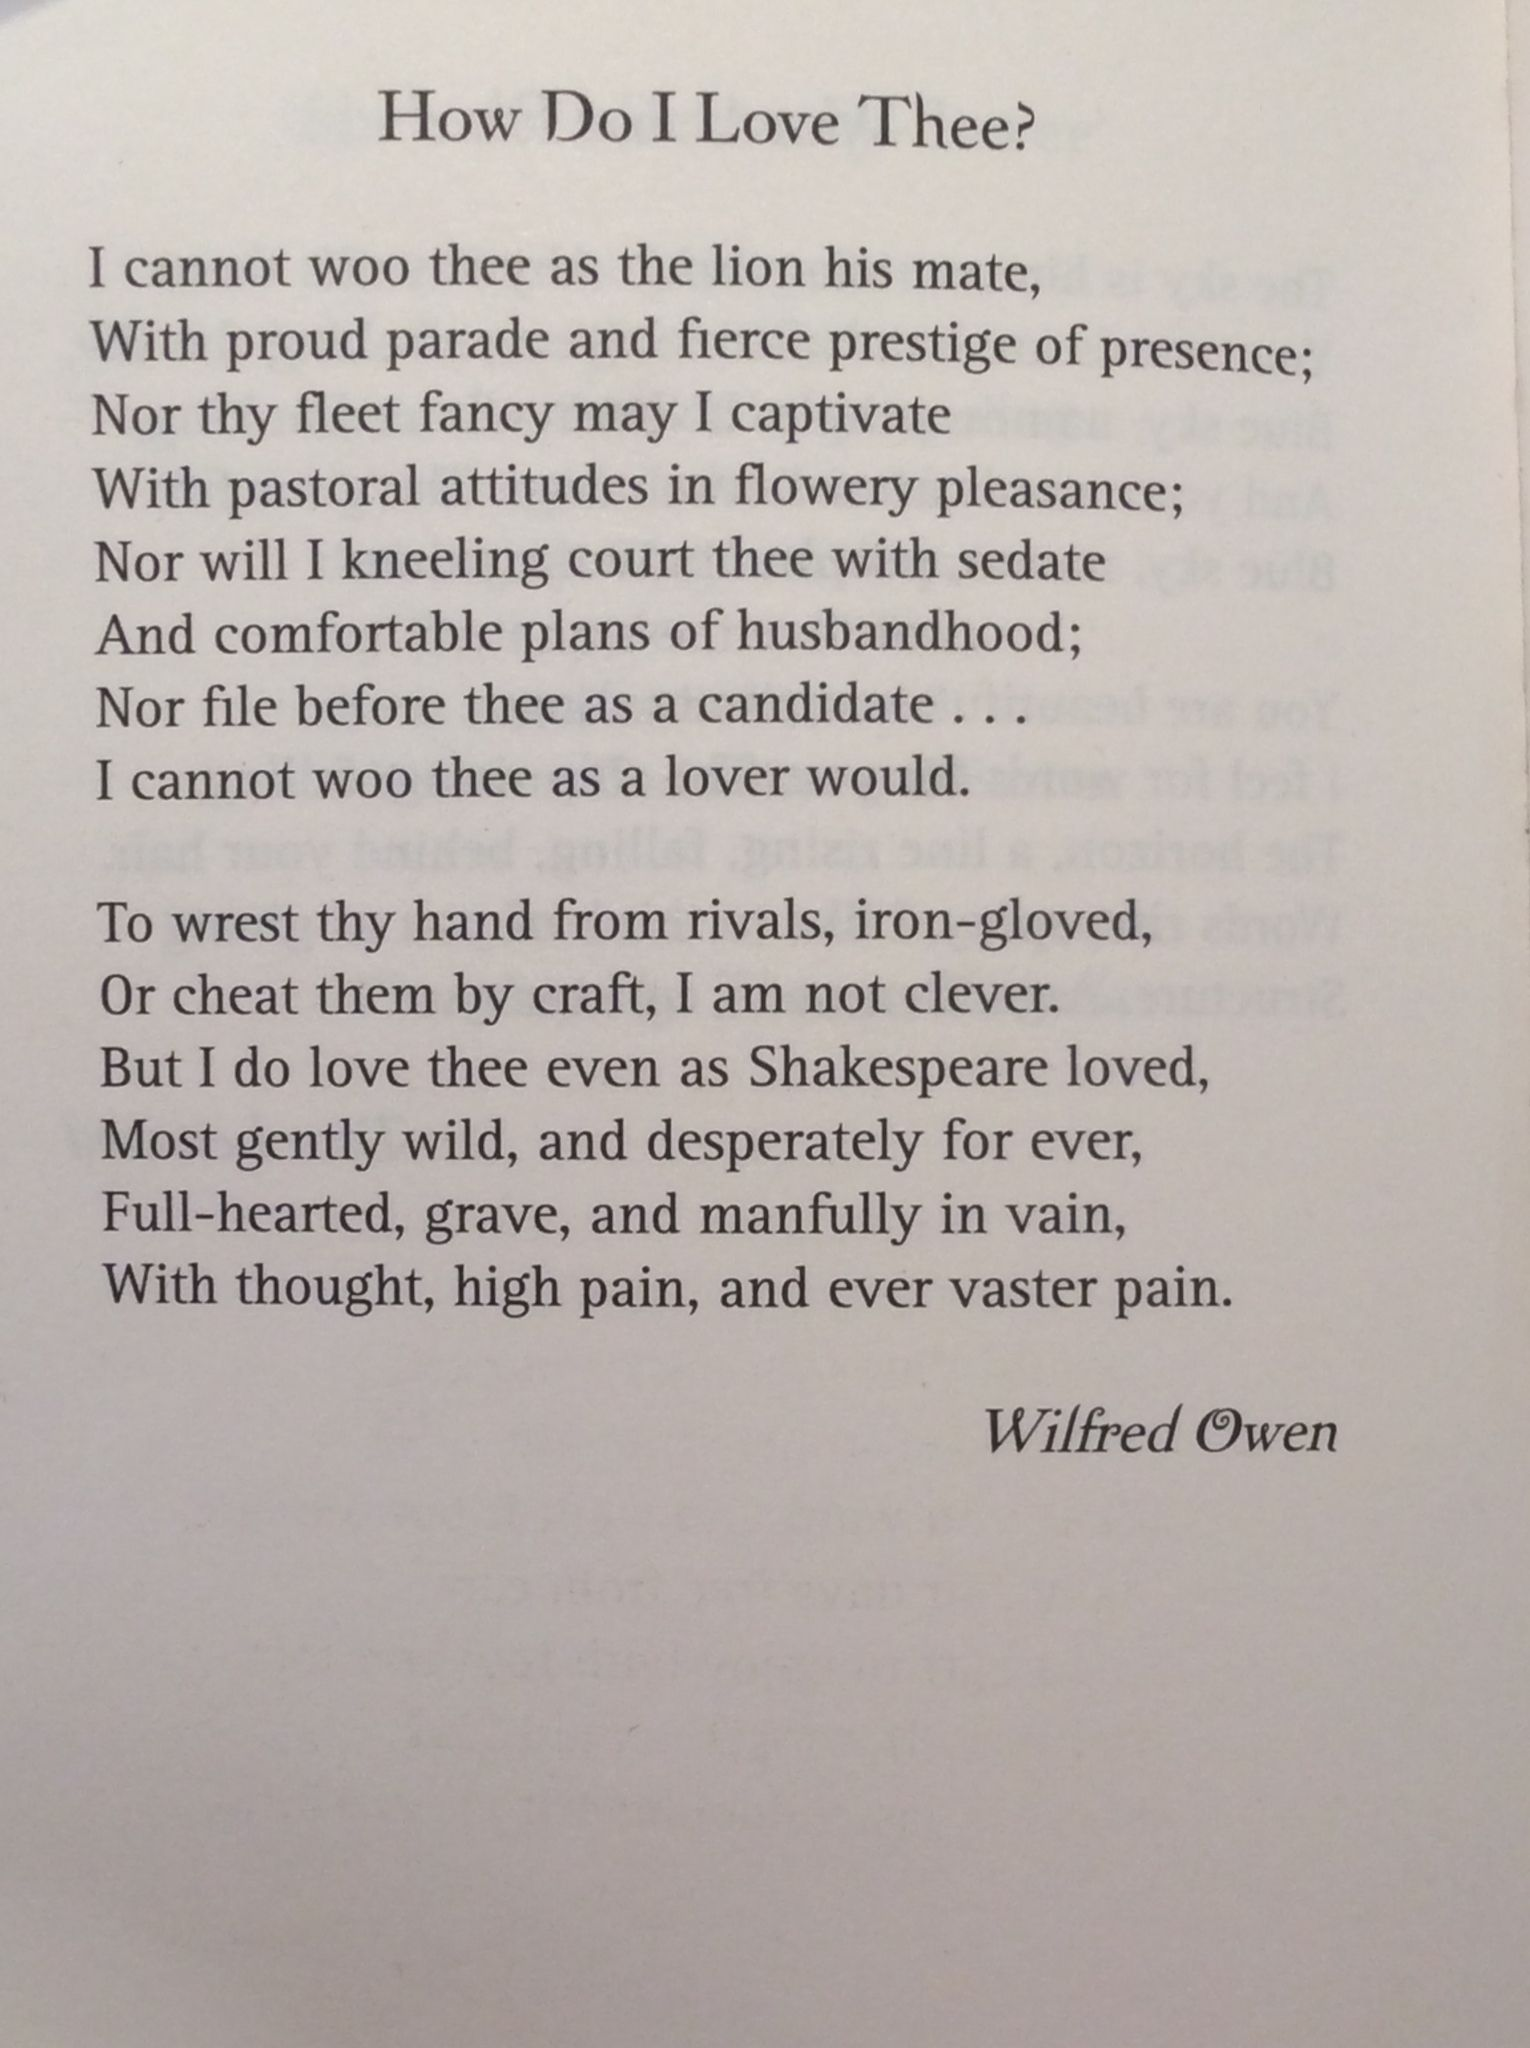 How Do I Love Thee Wilfred Owen Wilfred Owen Poems